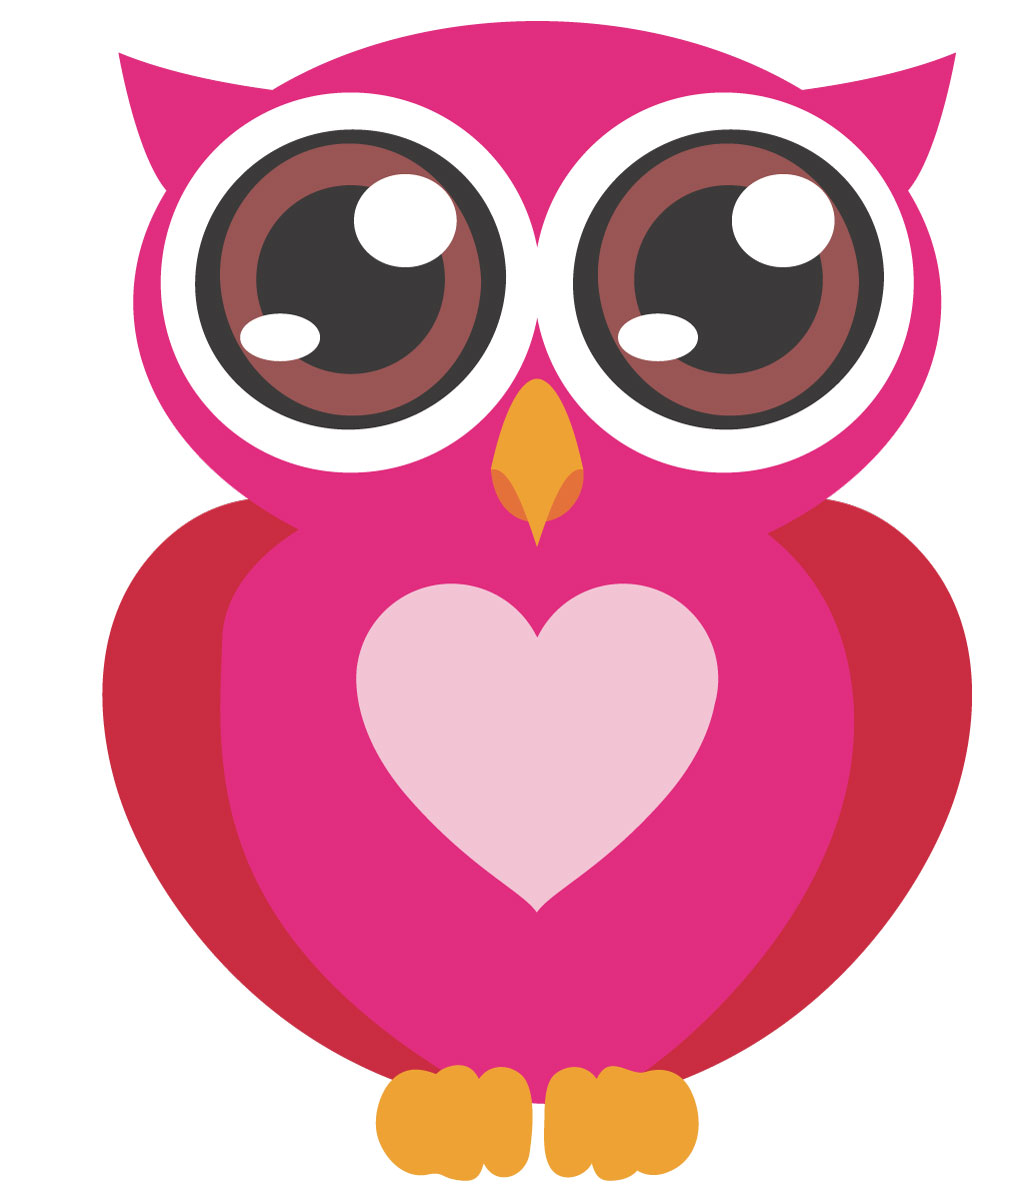 Cute Owl Eyes Clipart.